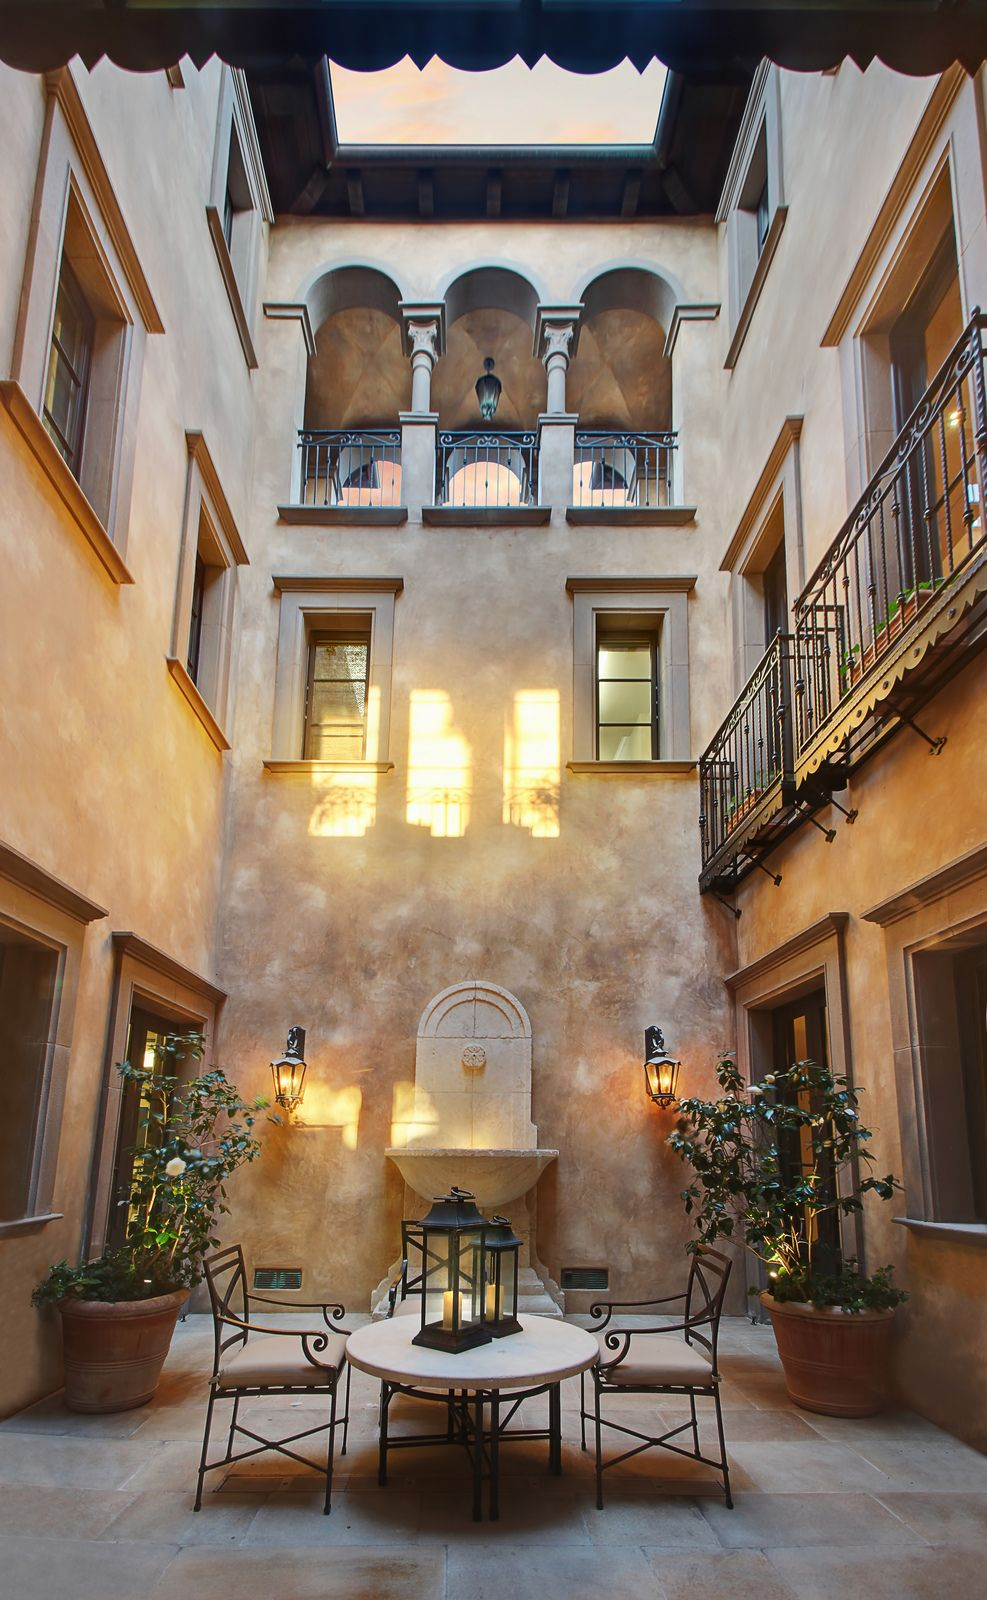 Italianate Style House Interior Italian Villa Internal Covered Courtyard Gorgeous